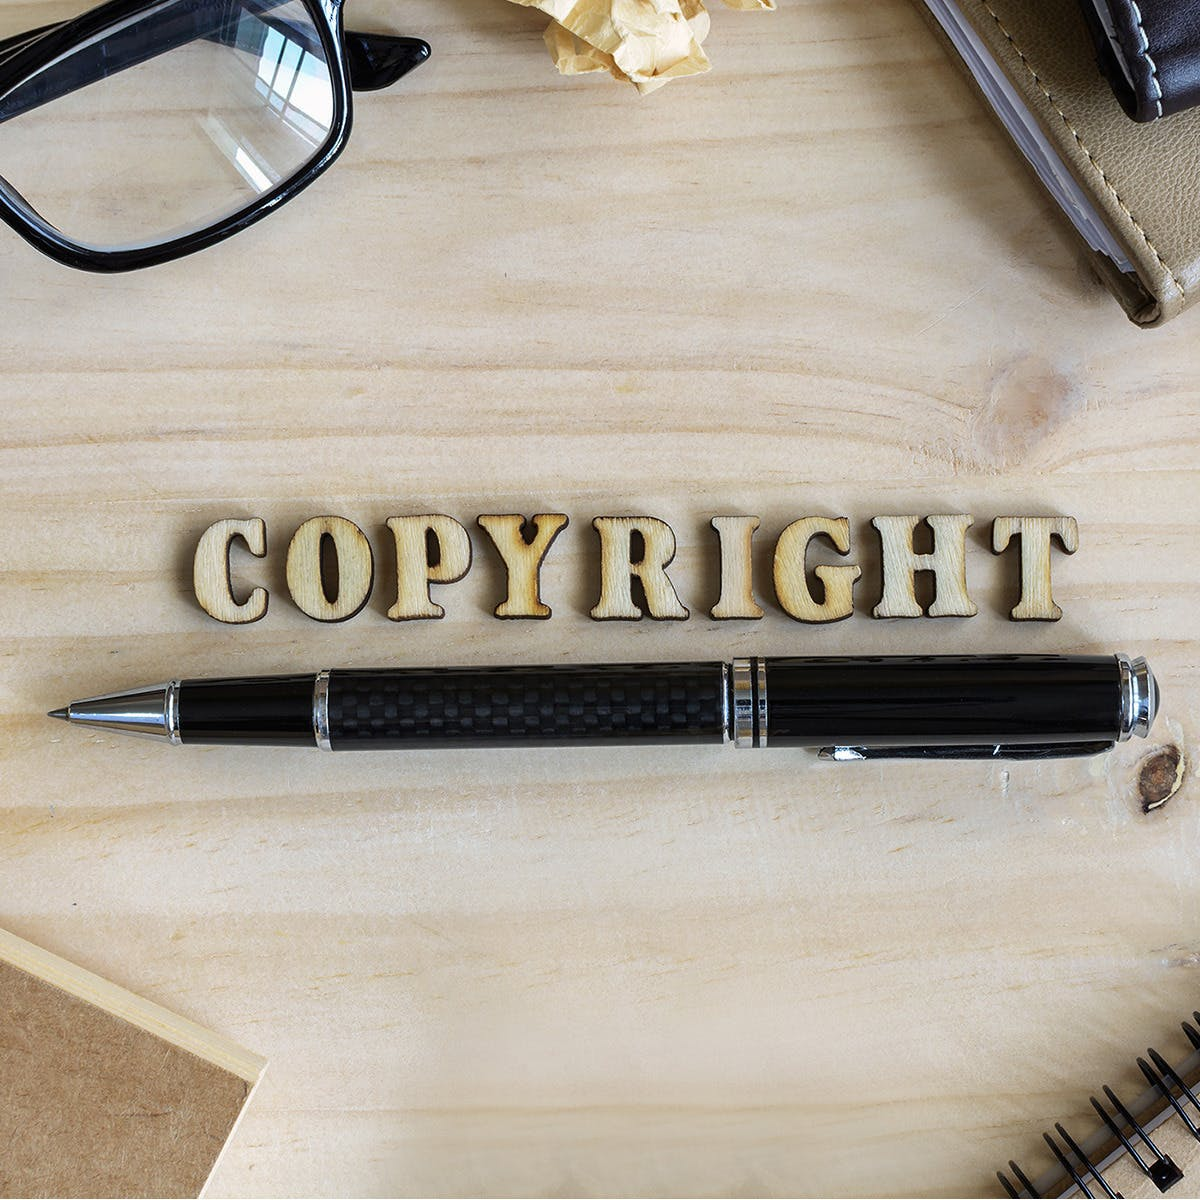 Copyright Registration: Why Wait?